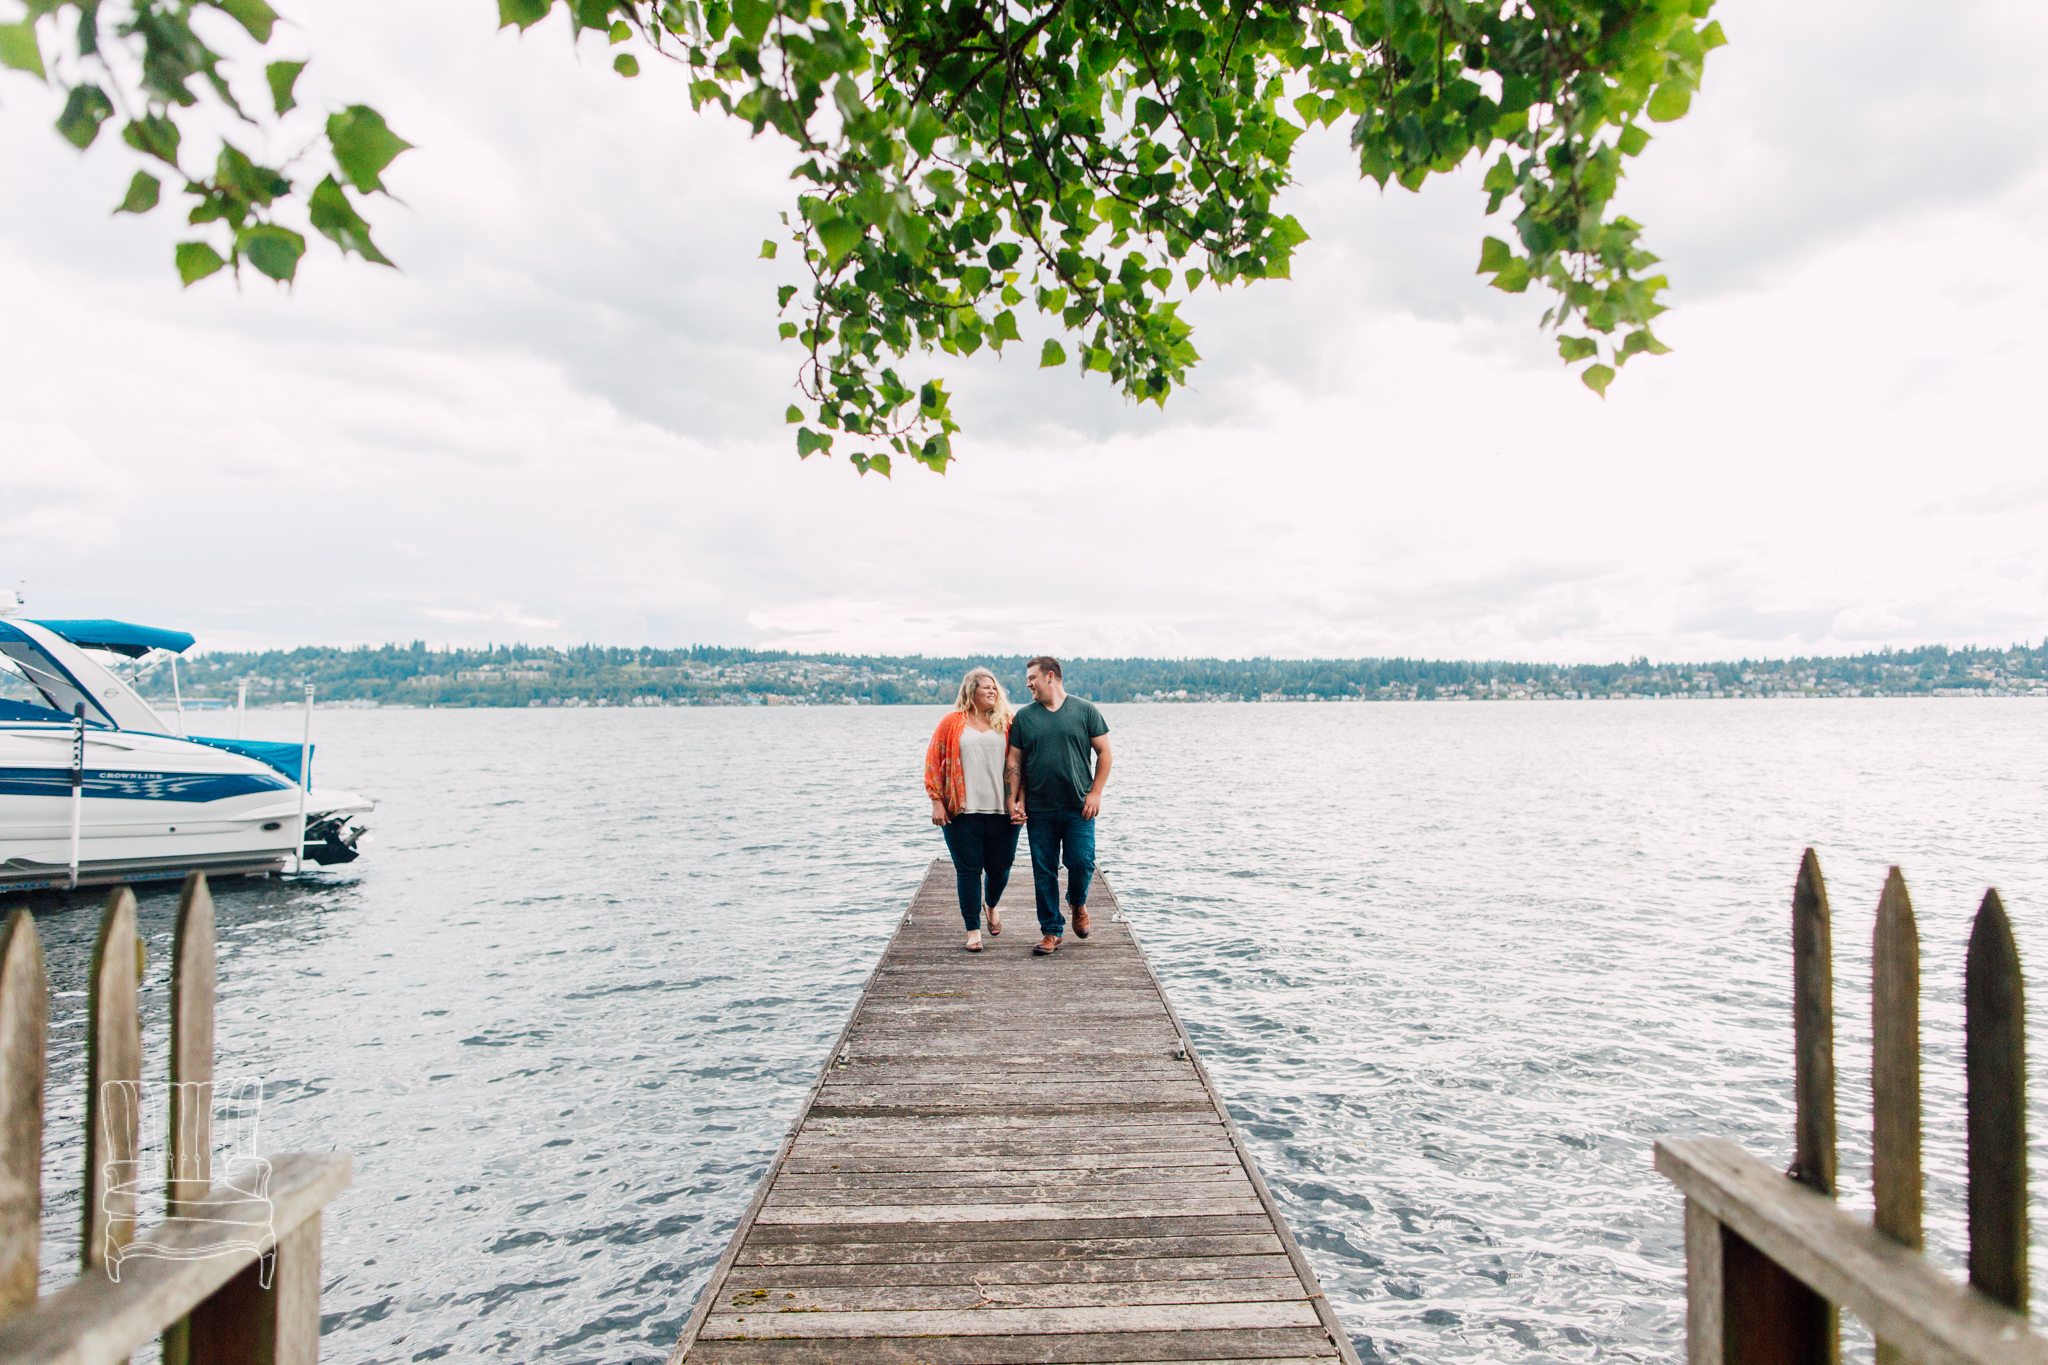 seattle-engagement-photographer-lake-washington-katheryn-moran-ashley-zach-6.jpg